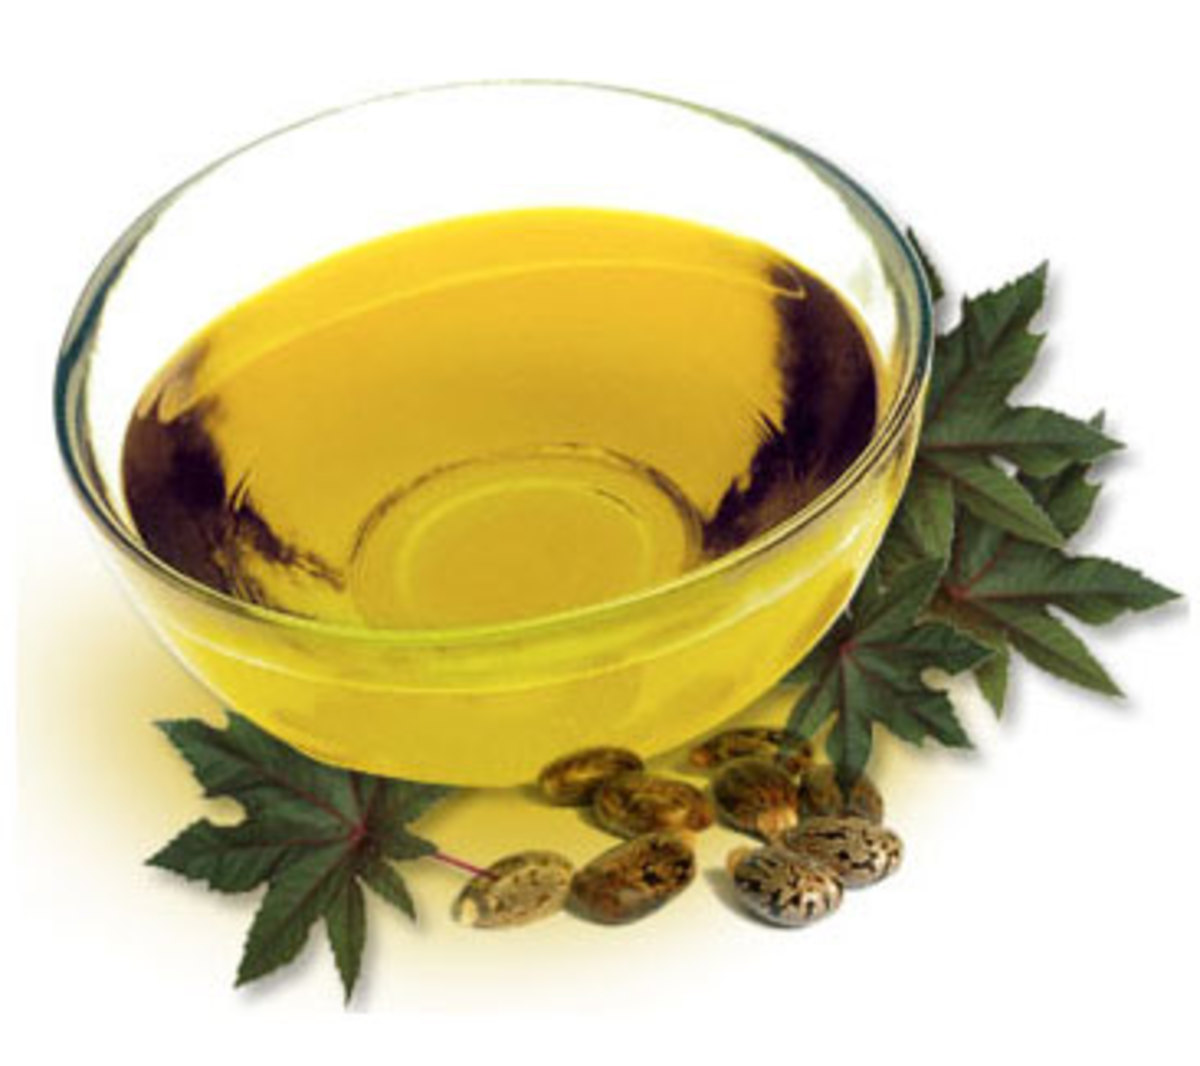 Castor Oil: Home Remedies for Beauty and Health Purposes